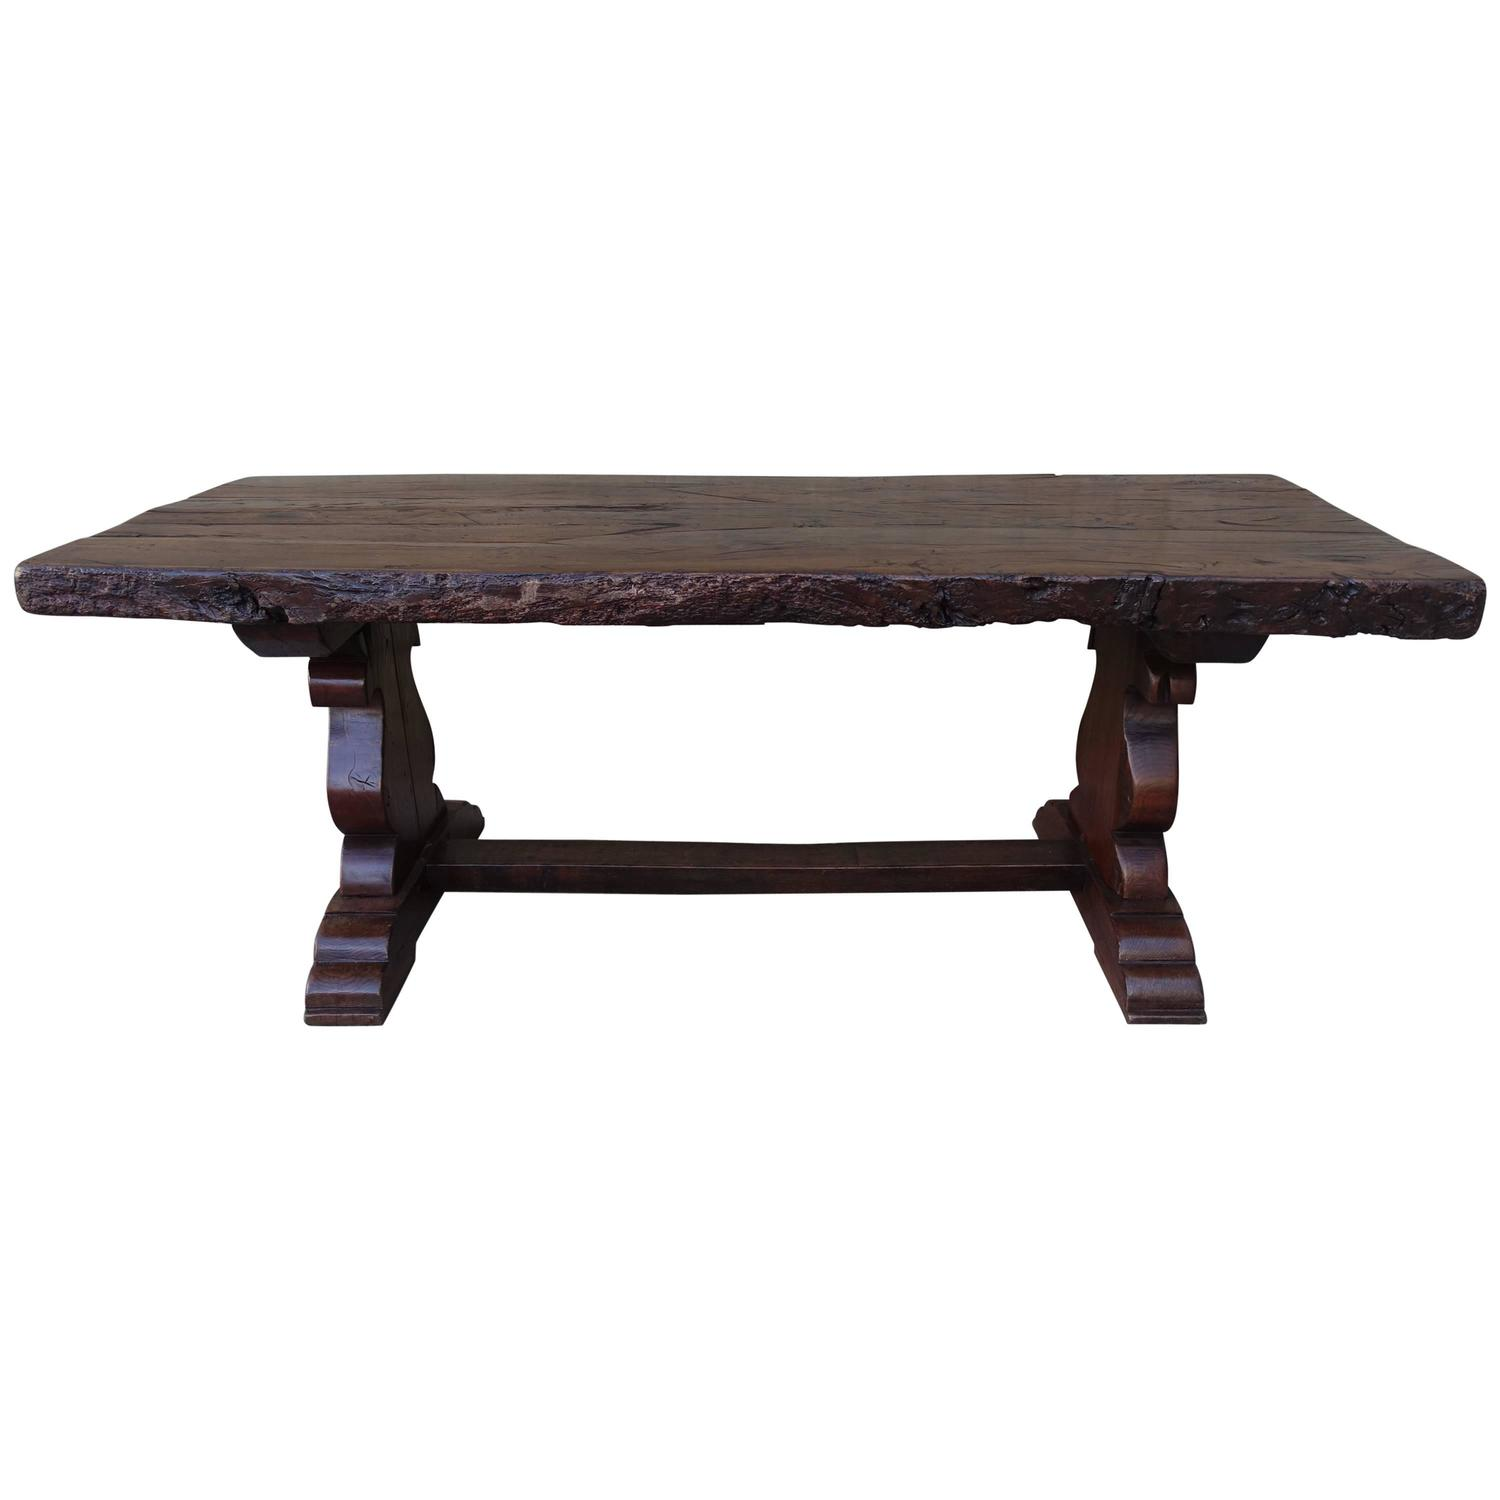 18th Century Spanish Trestle Table